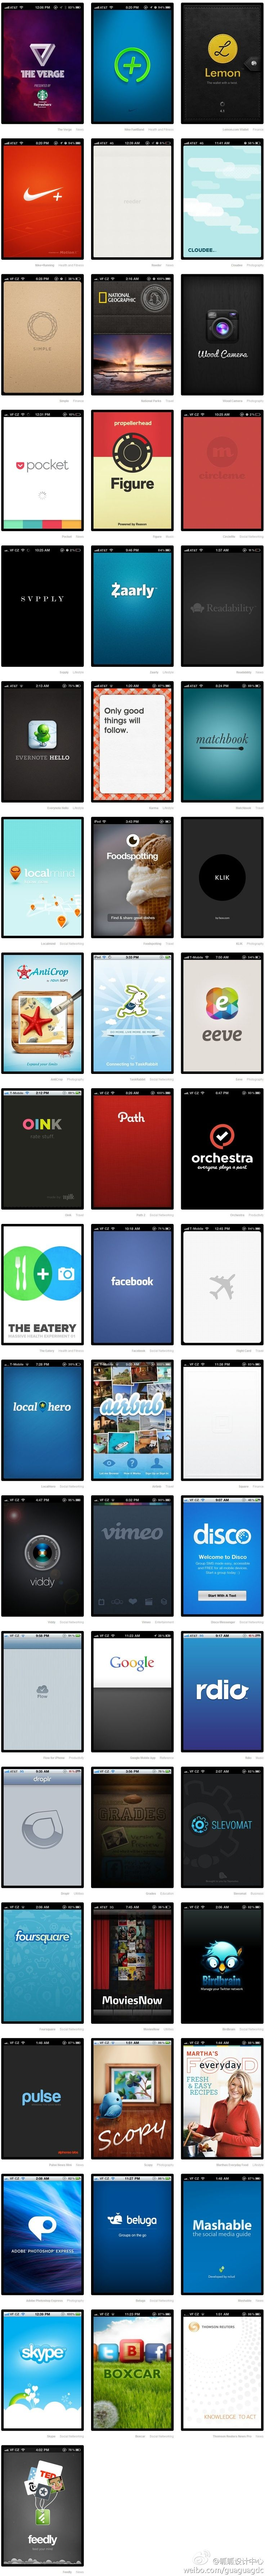 25 exemples de splash screen pour des applications mobiles - interactions-mobile